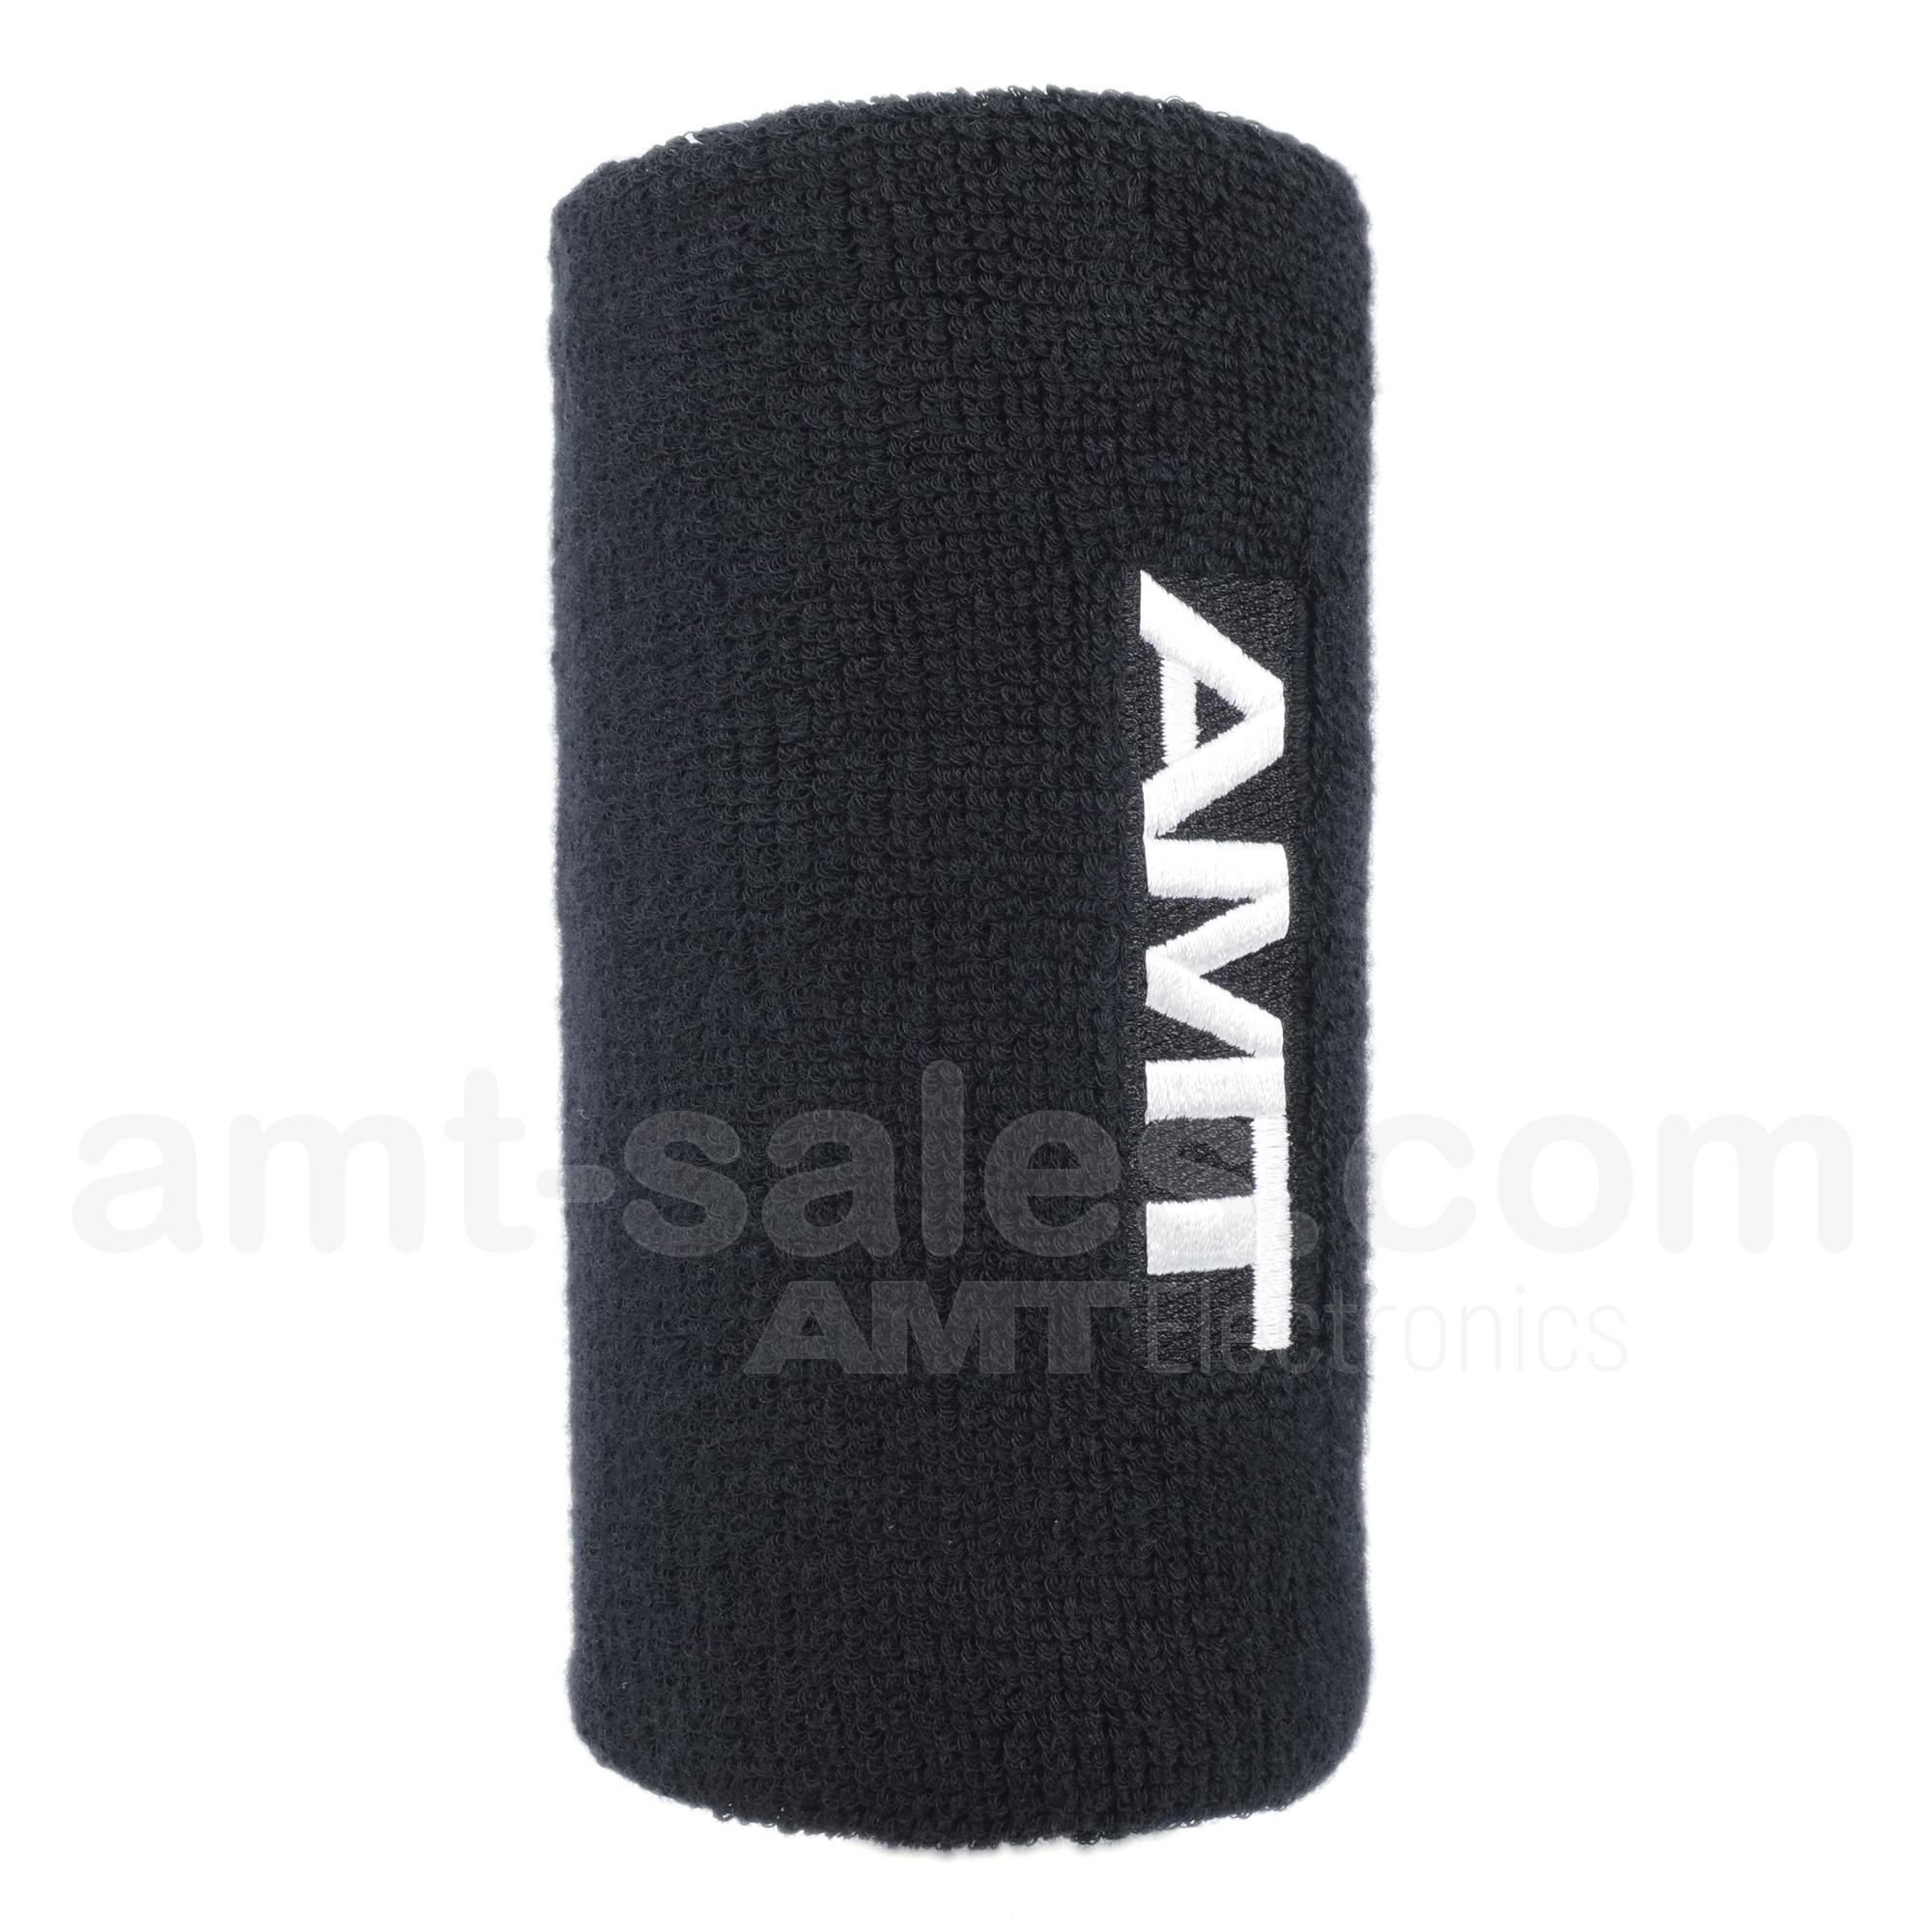 AMT Wristband - wristband with AMT logo